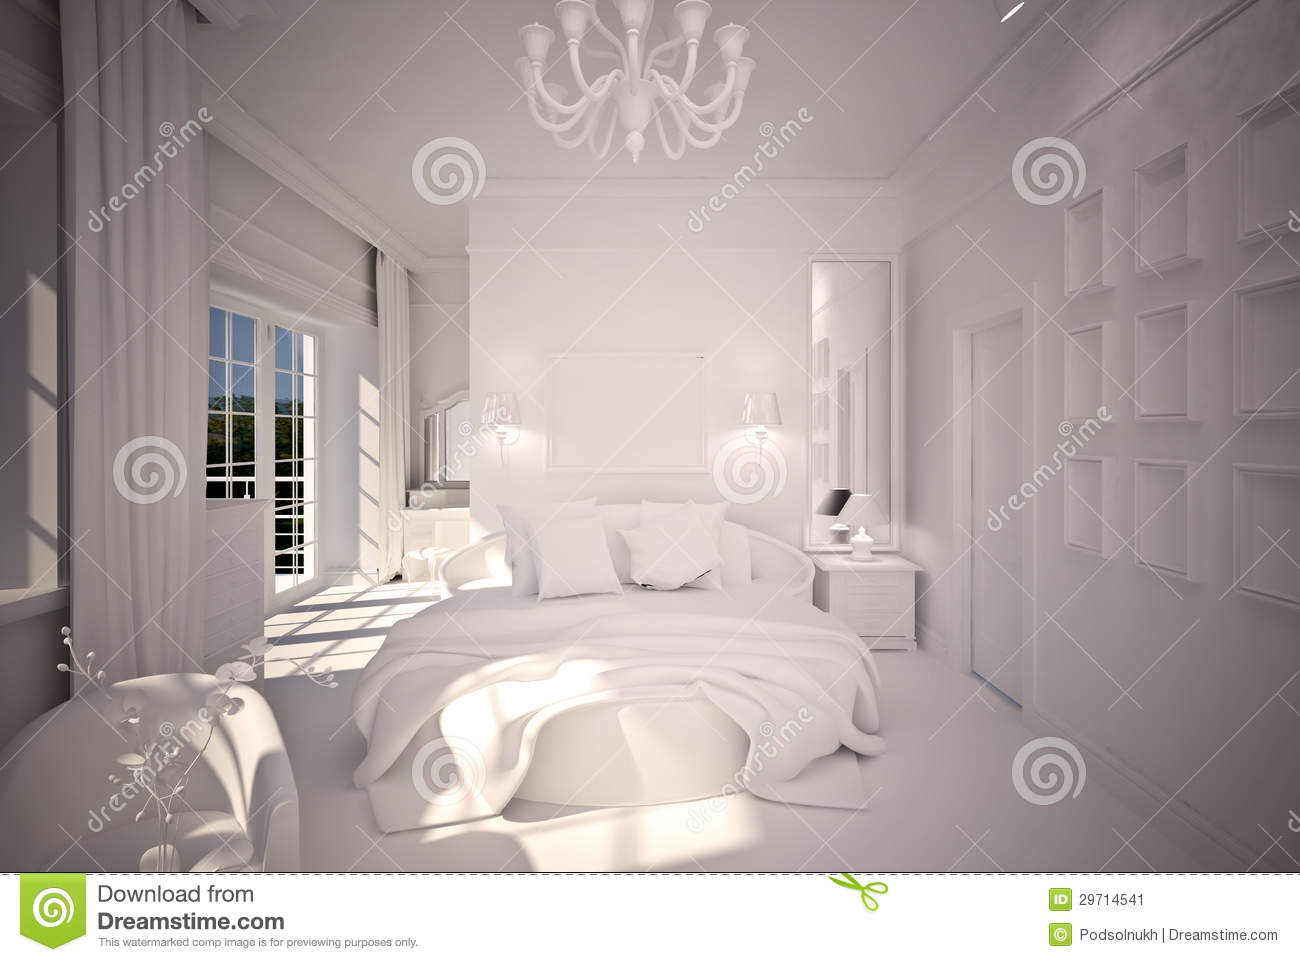 Conception int rieure b w de chambre coucher image stock image 29714541 for Conception chambre